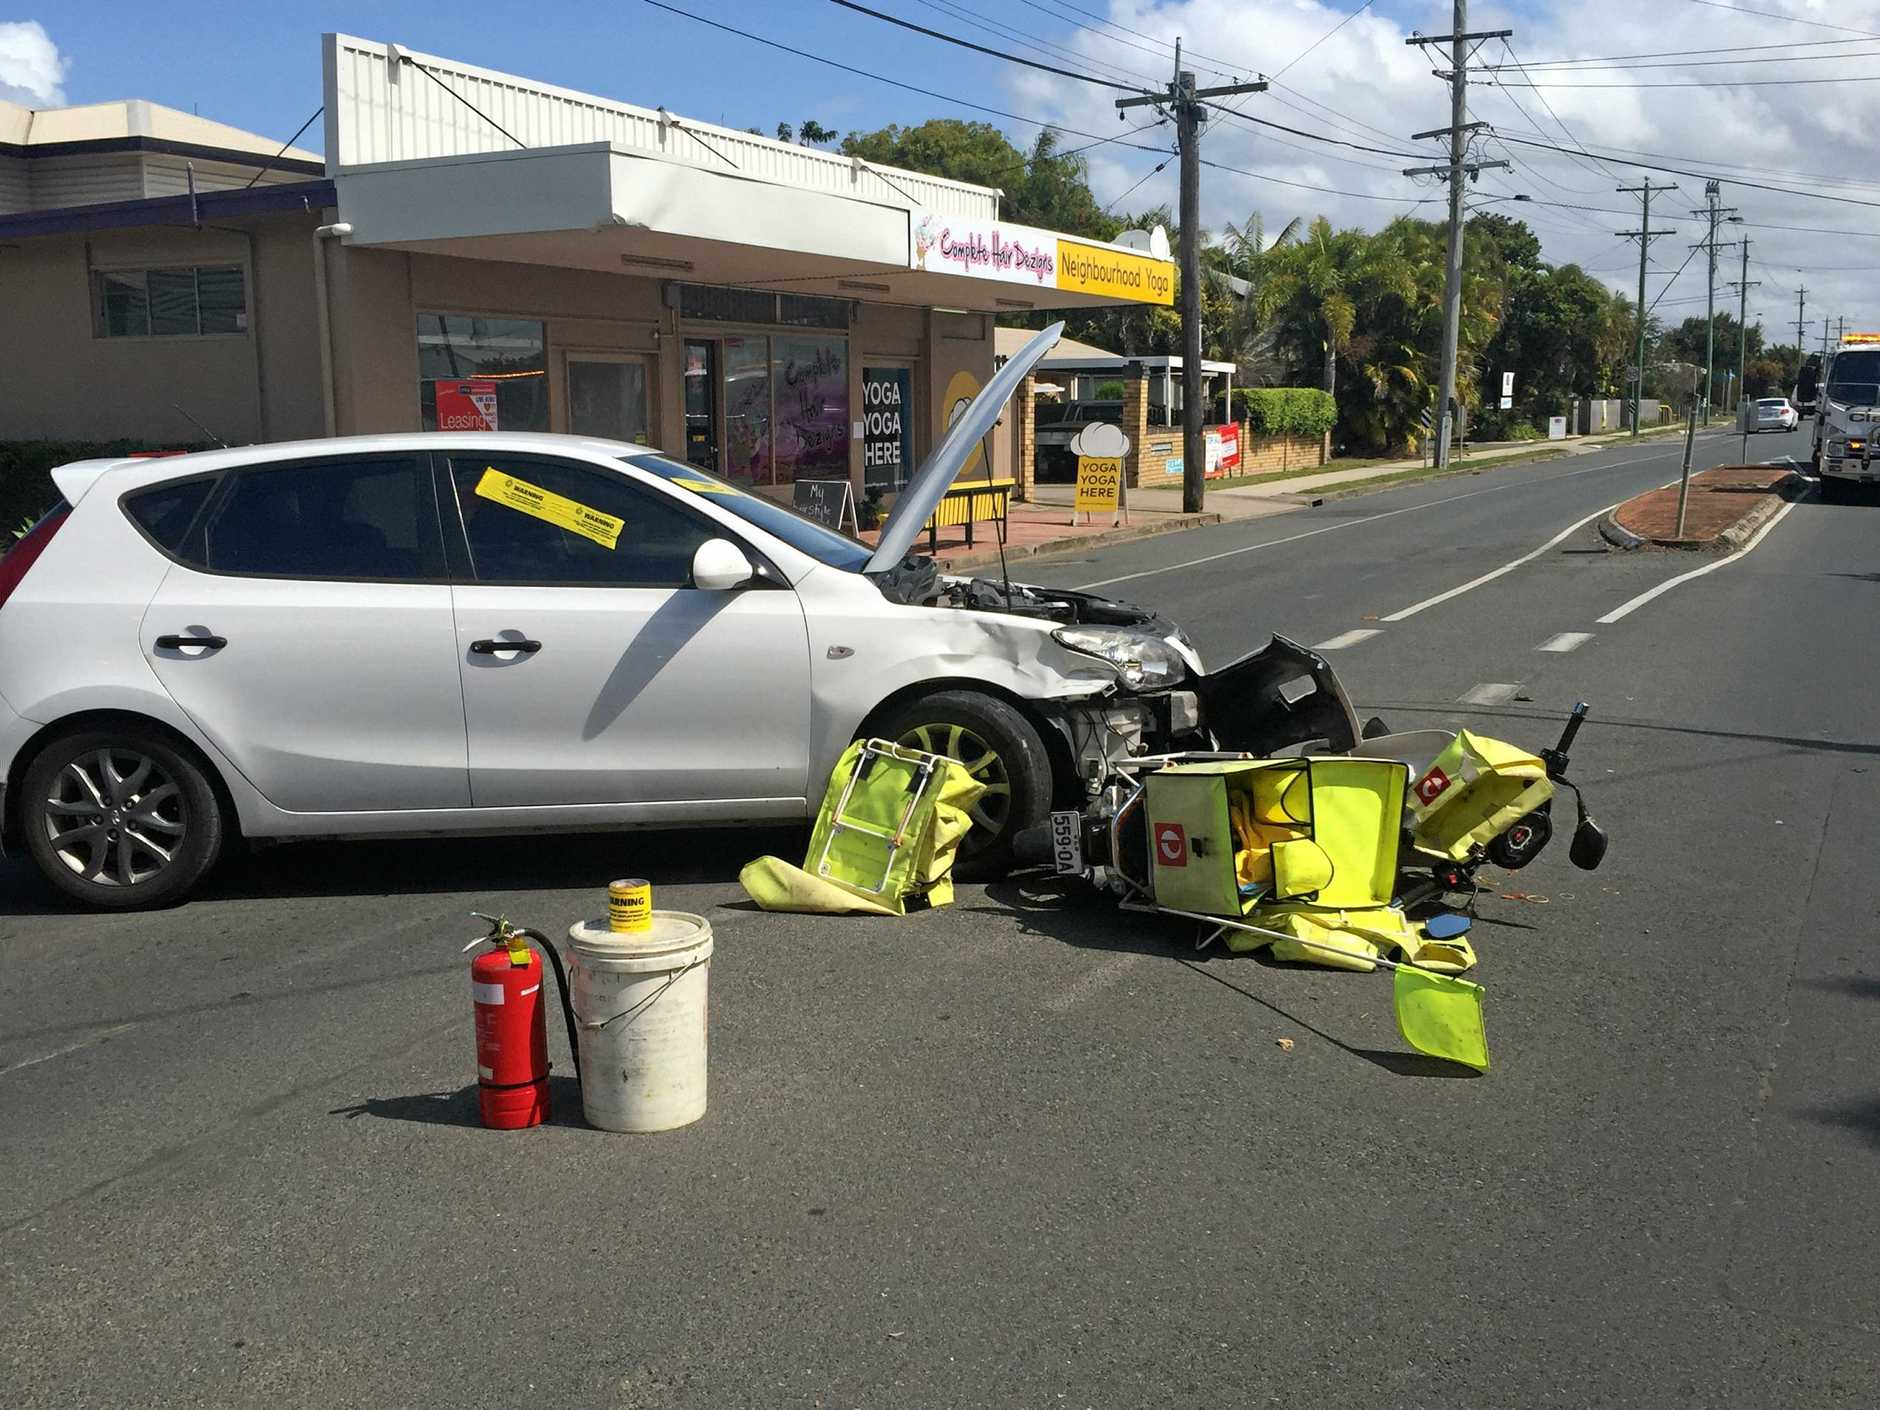 A postie was taken to hospital after this collision involving a postal delivery bike and a car in West Mackay on Wednesday.